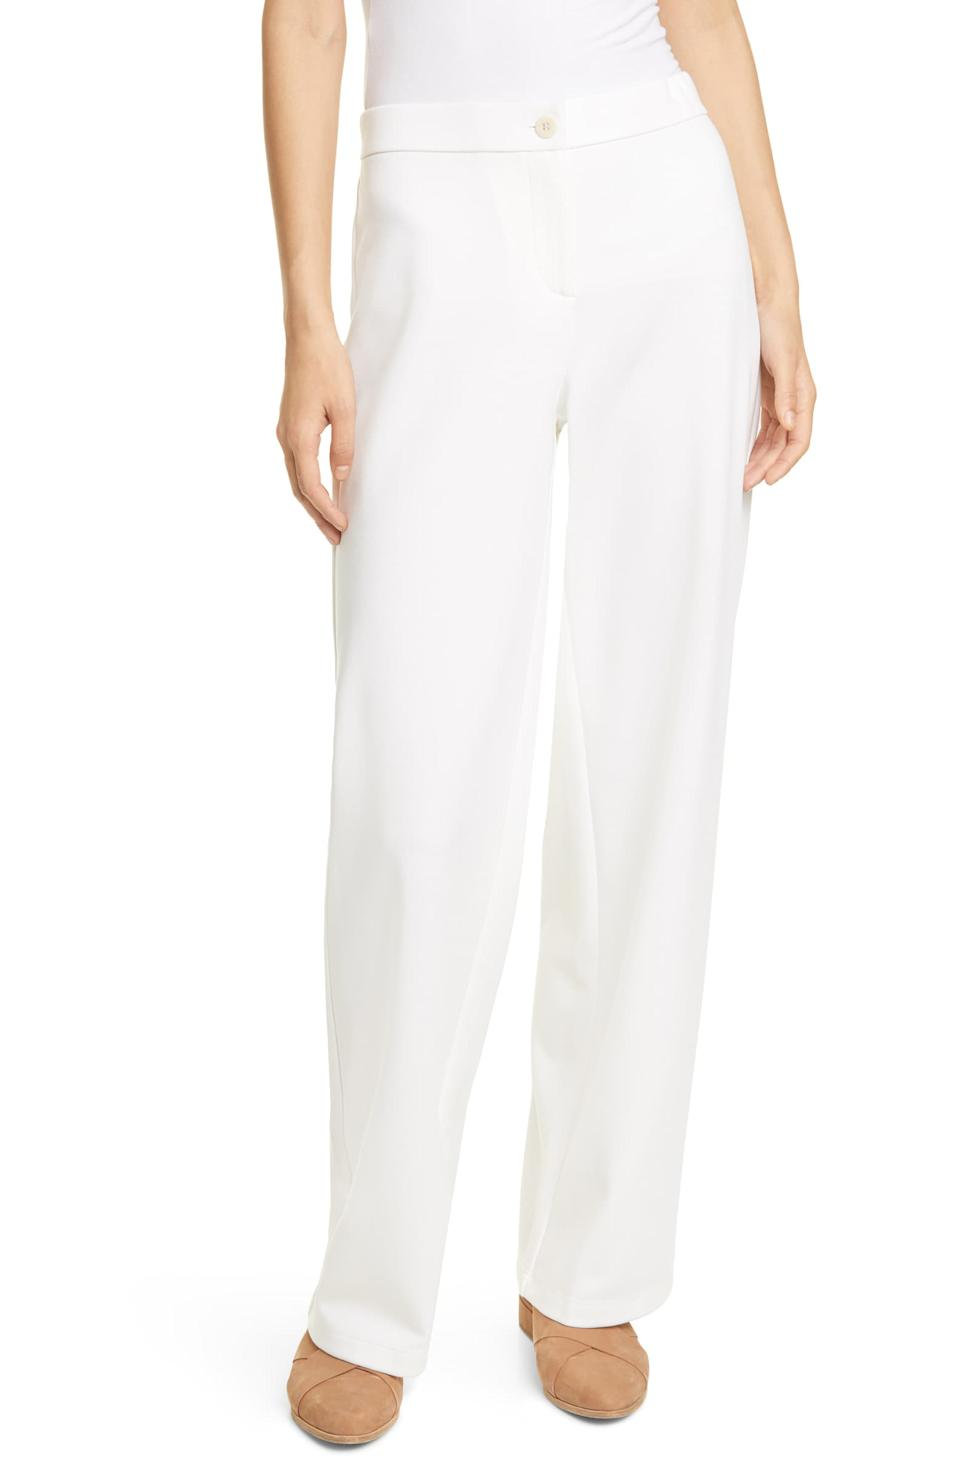 Eileen Fisher Straight Leg Ankle Pants. Image via Nordstrom.